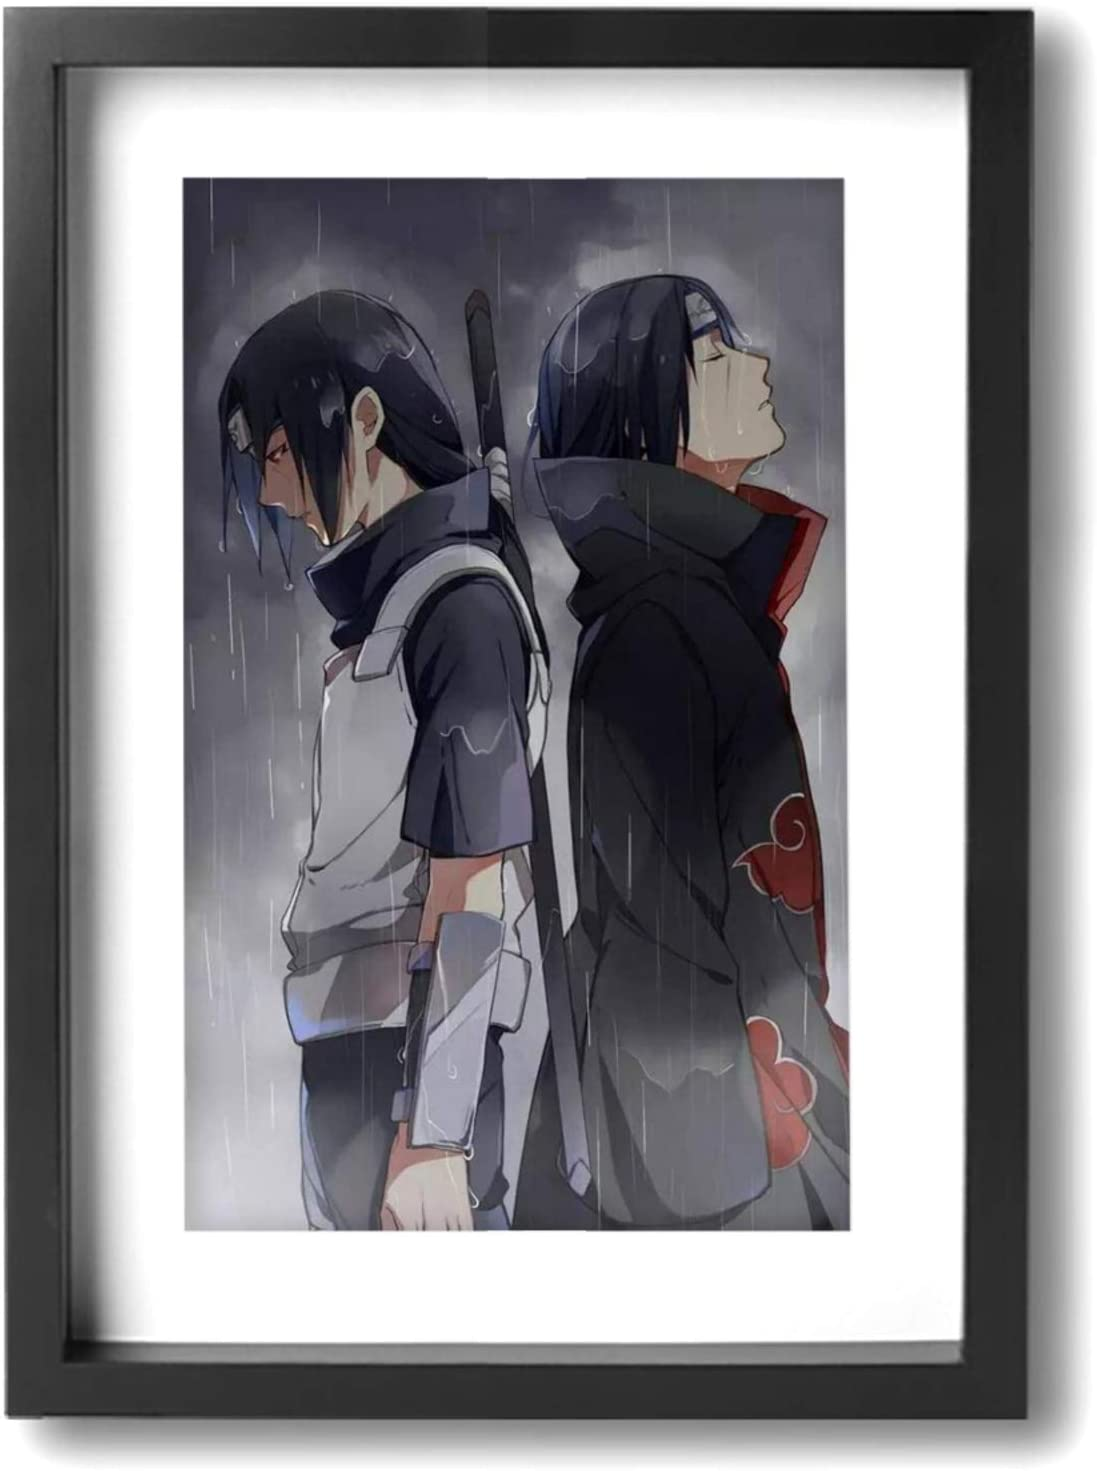 Naruto Uchiha Itachi Akatsuki Wall Decor Framed Painted Office Home Decor Paintings Artwork for Living Room Bathroom Bedroom Stretched Ready to Hang 9x13 inch (A4)